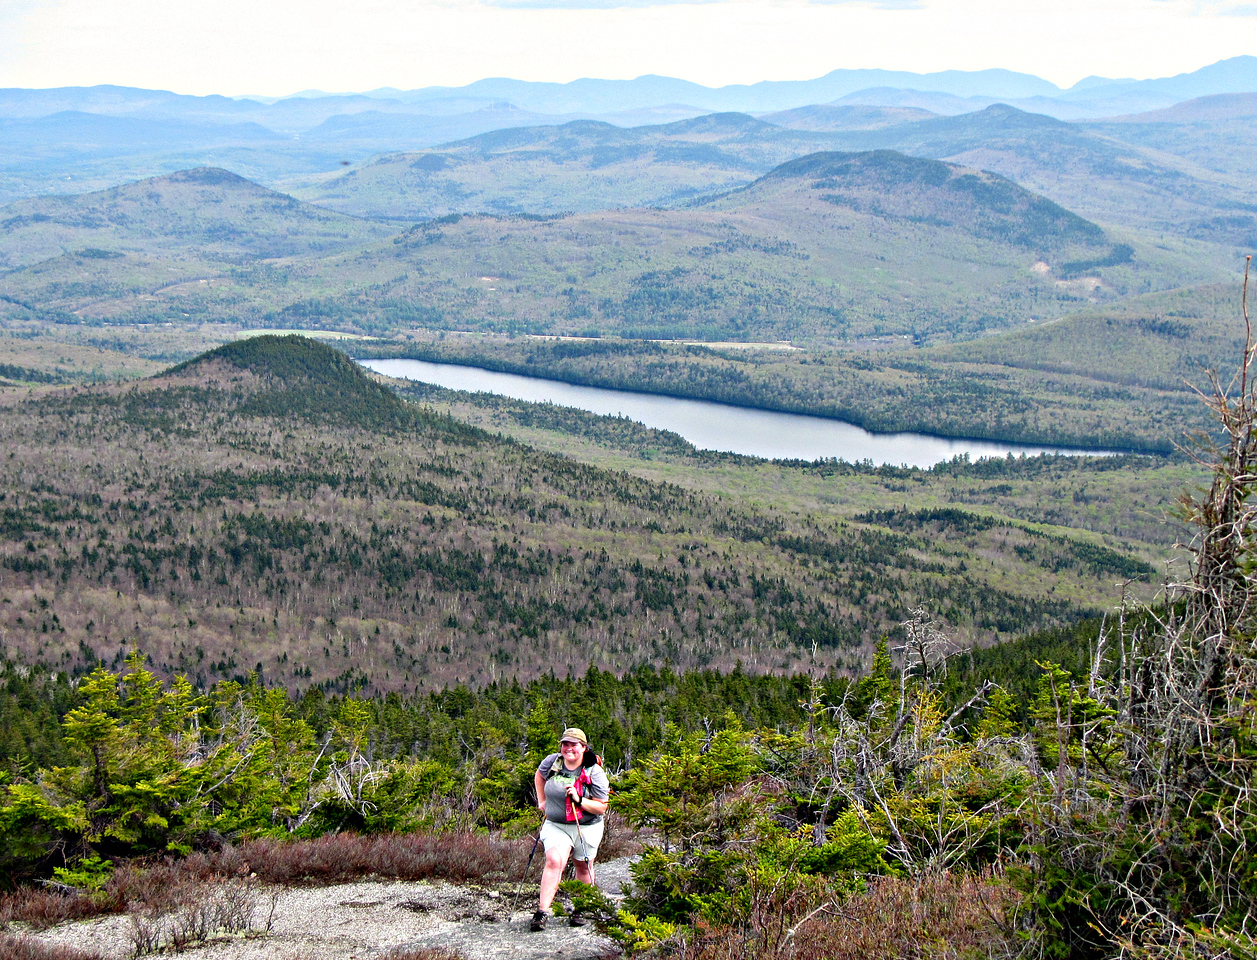 Nearing the No. Percy summit:  Victor Head and Lake Christine in the background.